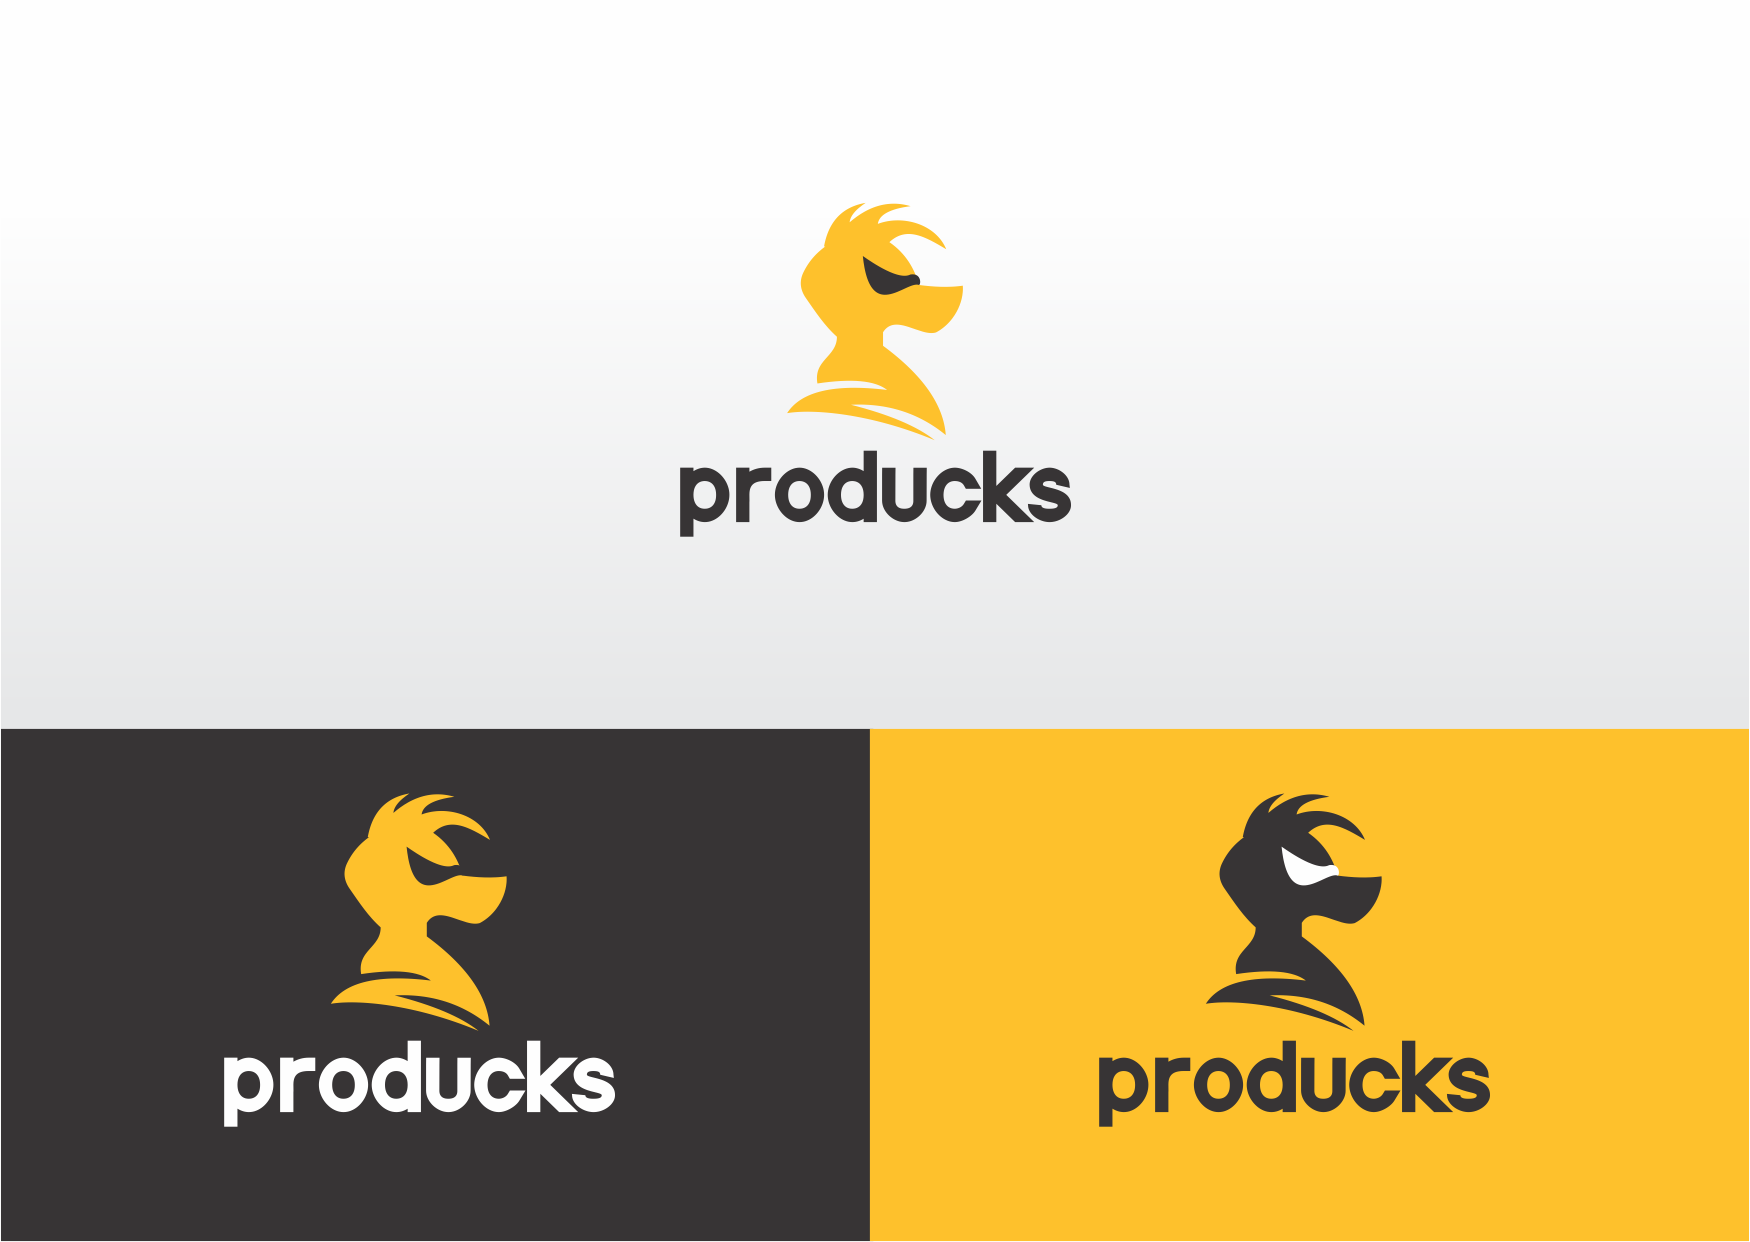 create a suitable logo for your company in 2 days